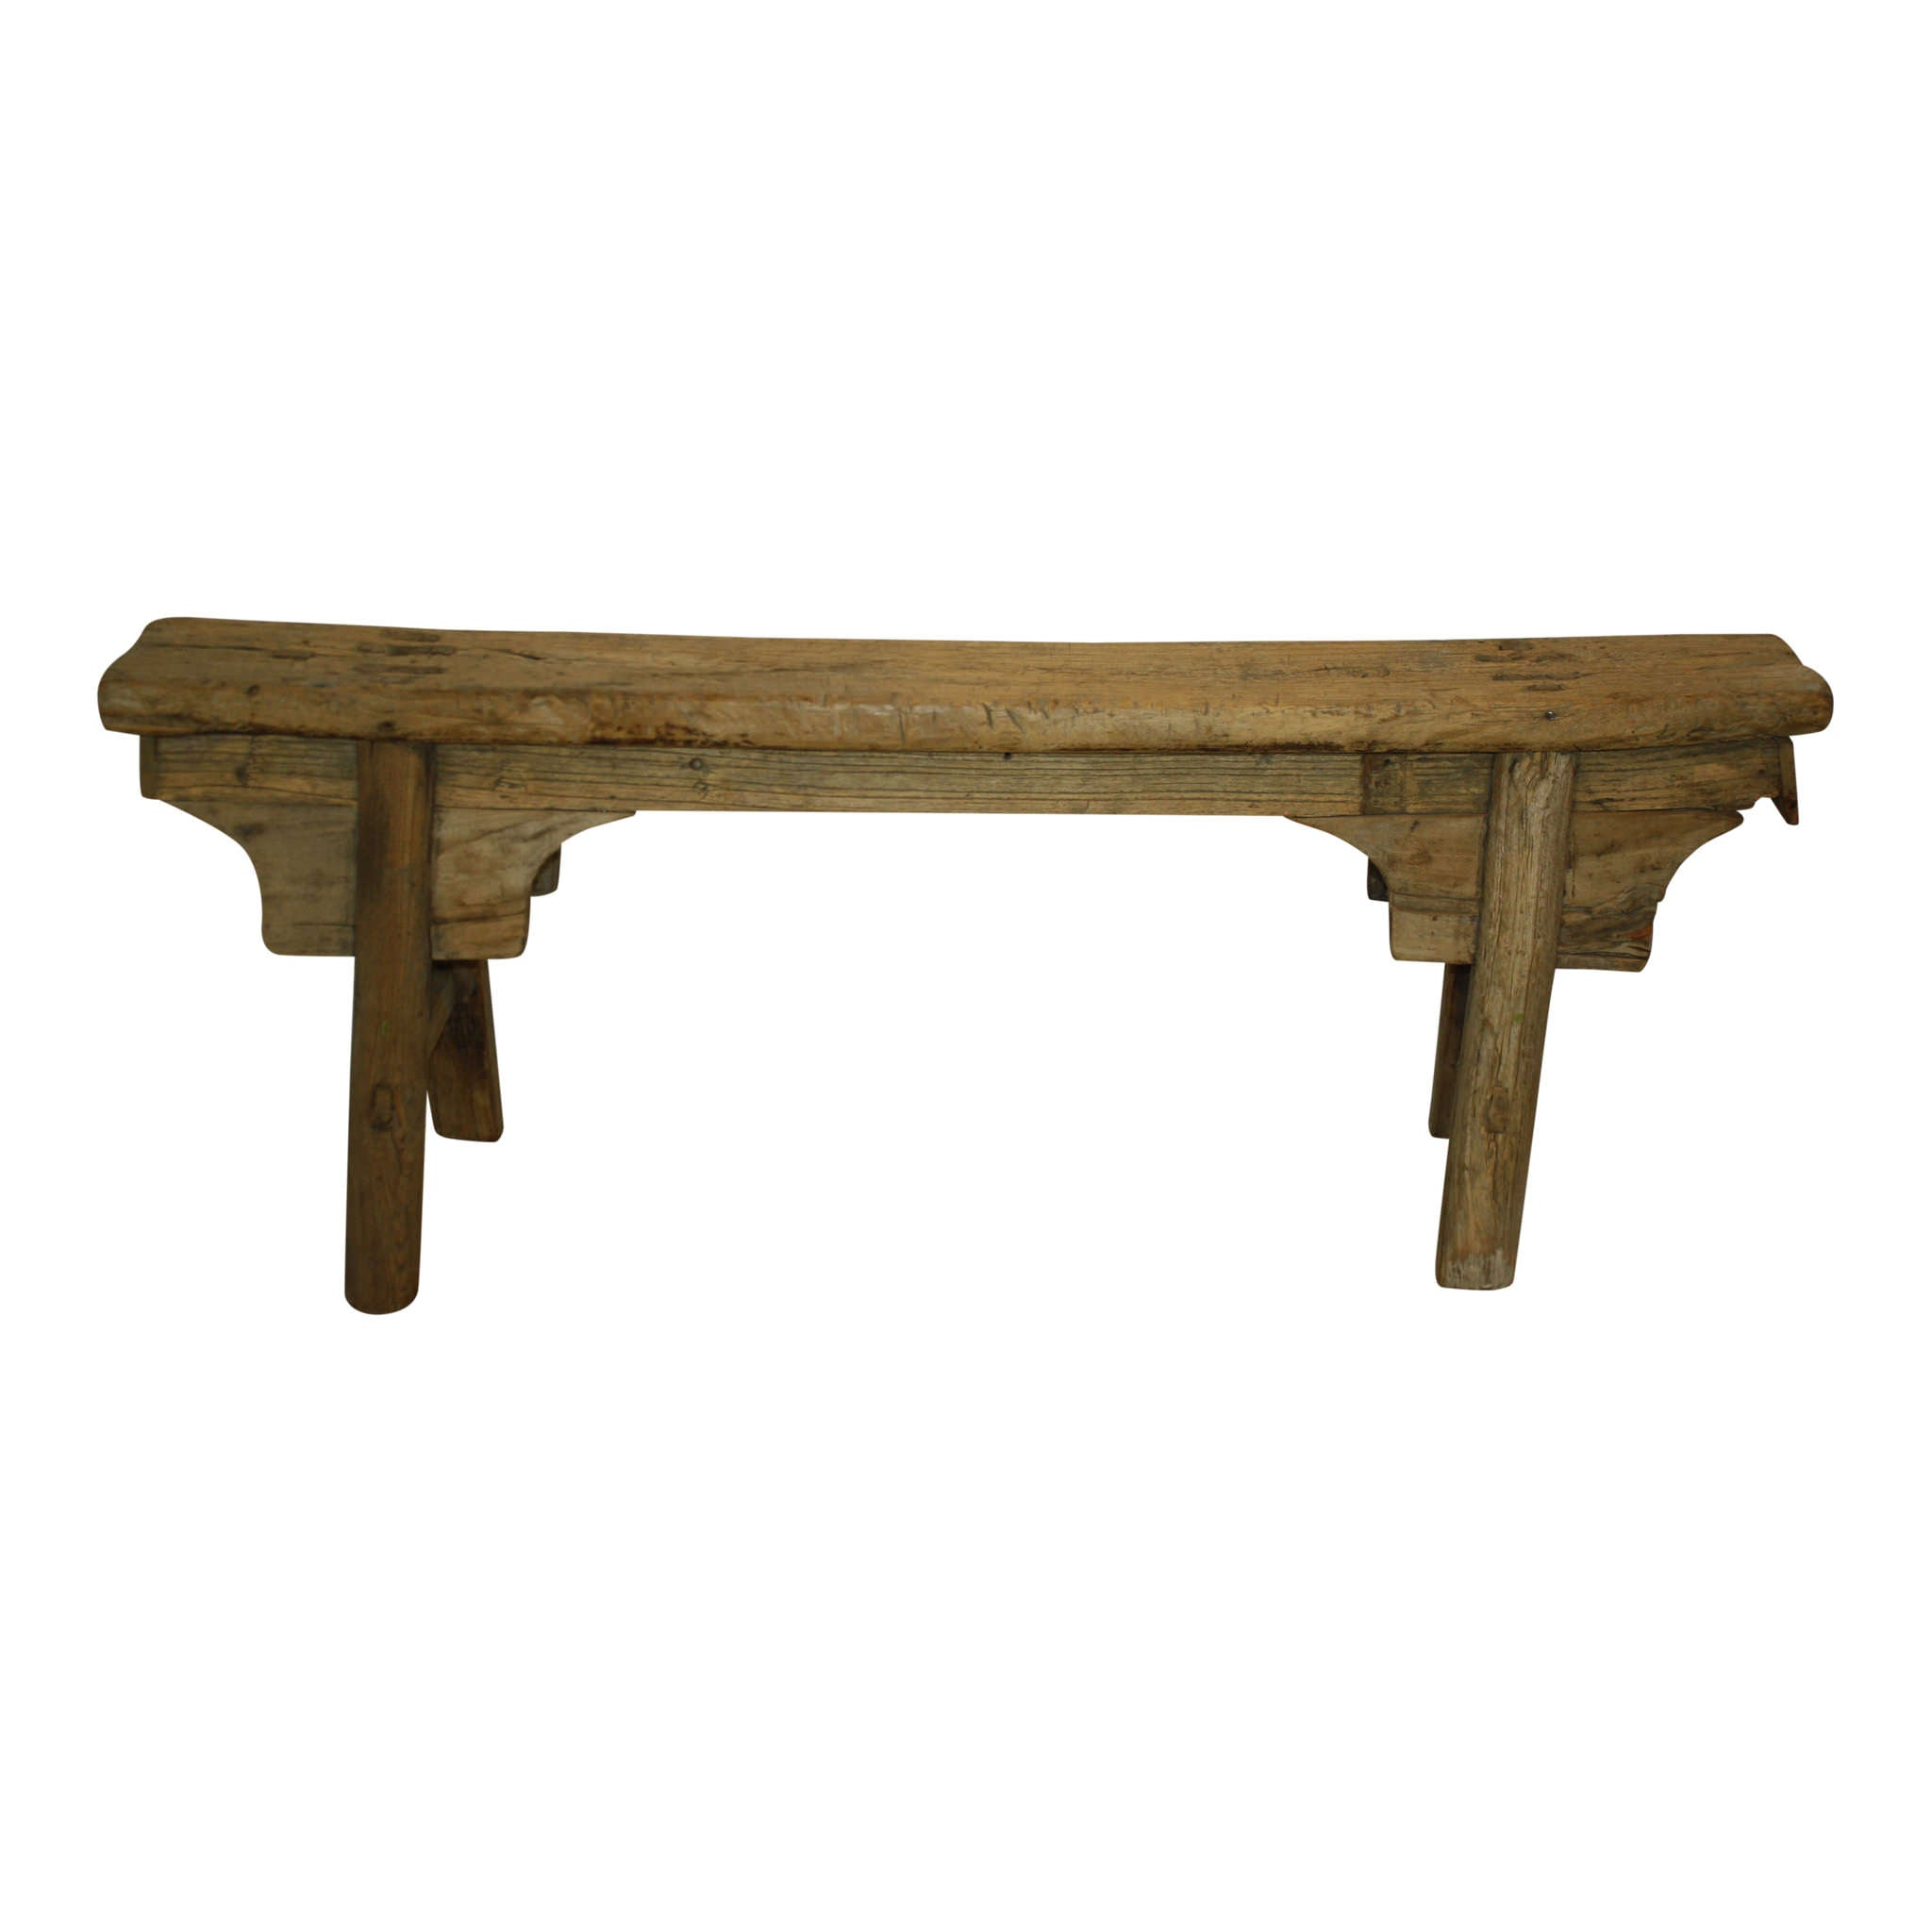 Rustic Dutch Bench